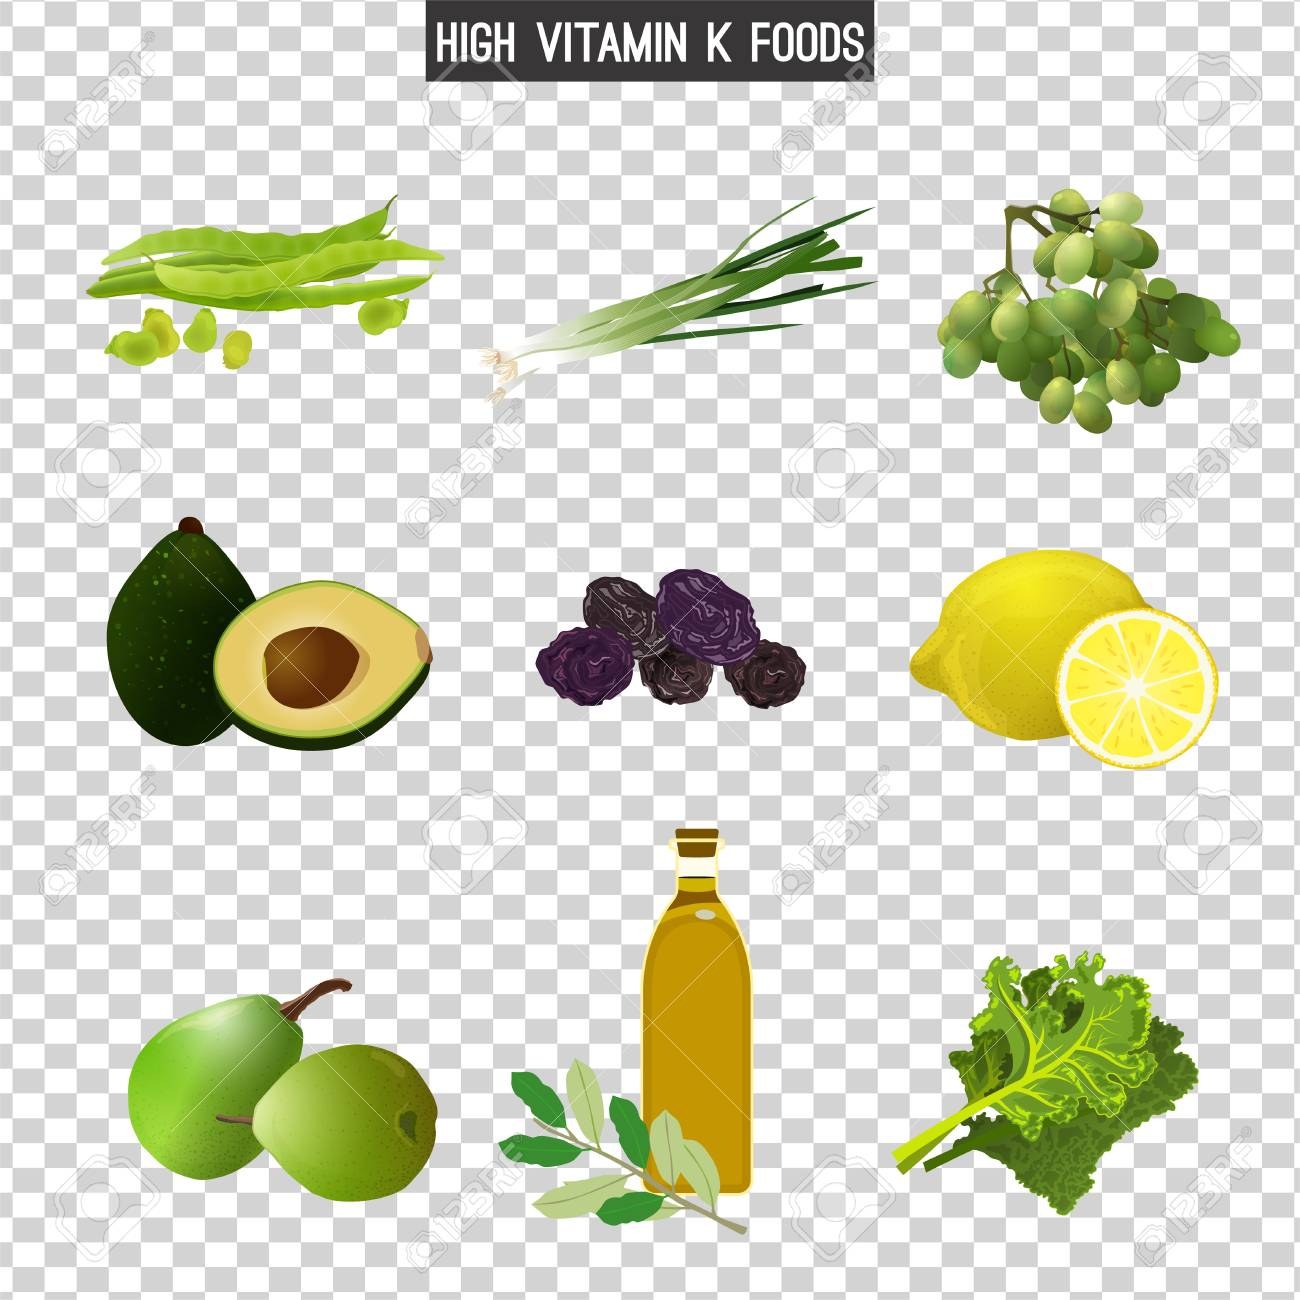 High Vitamin K Foods Vector Illustration Isolated On A Transparent